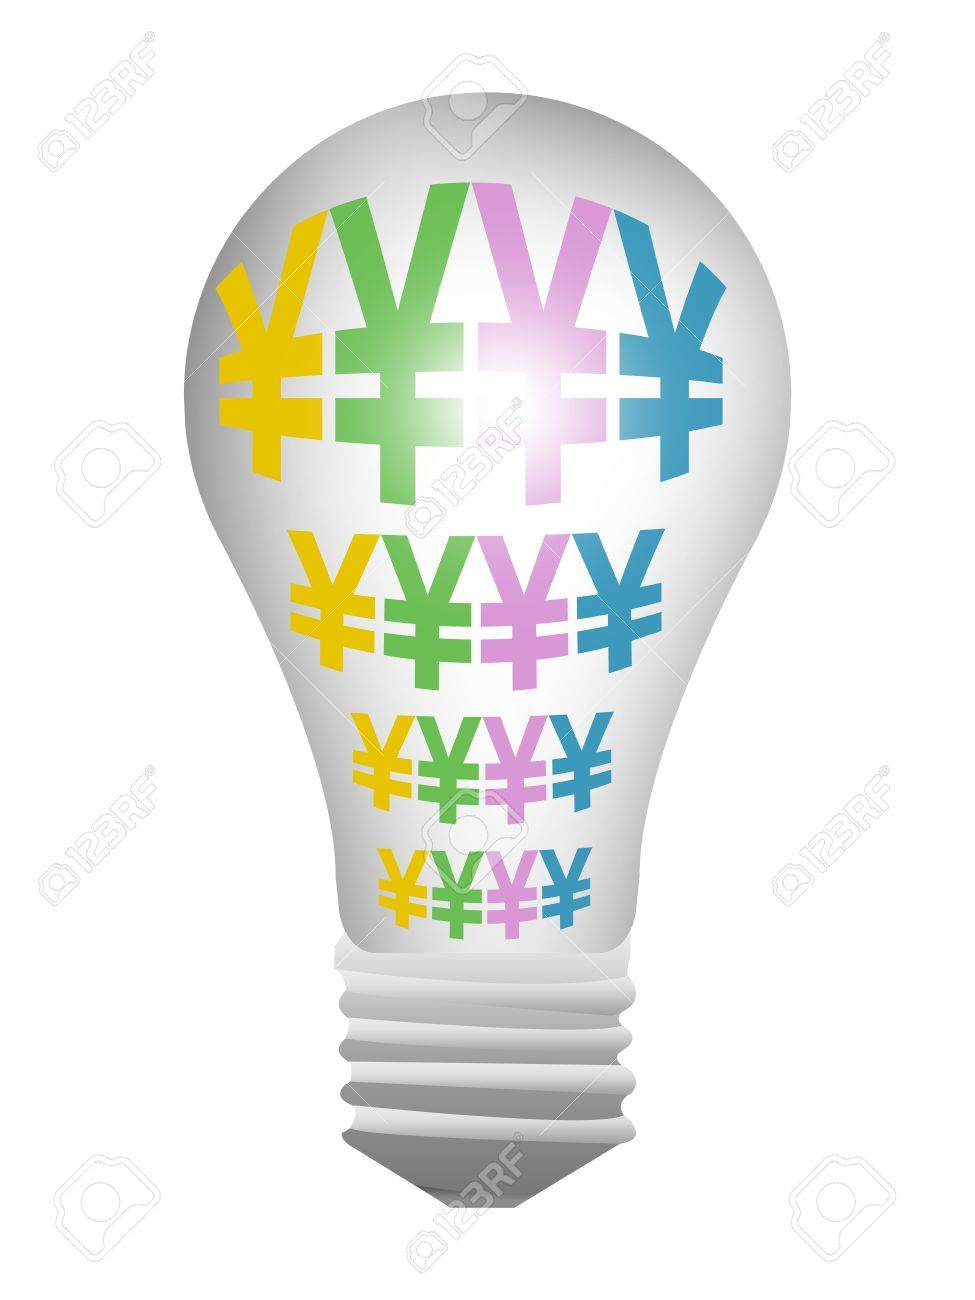 Light Bulb With Currency Symbols Japanese Yen Or Chinese Yuan